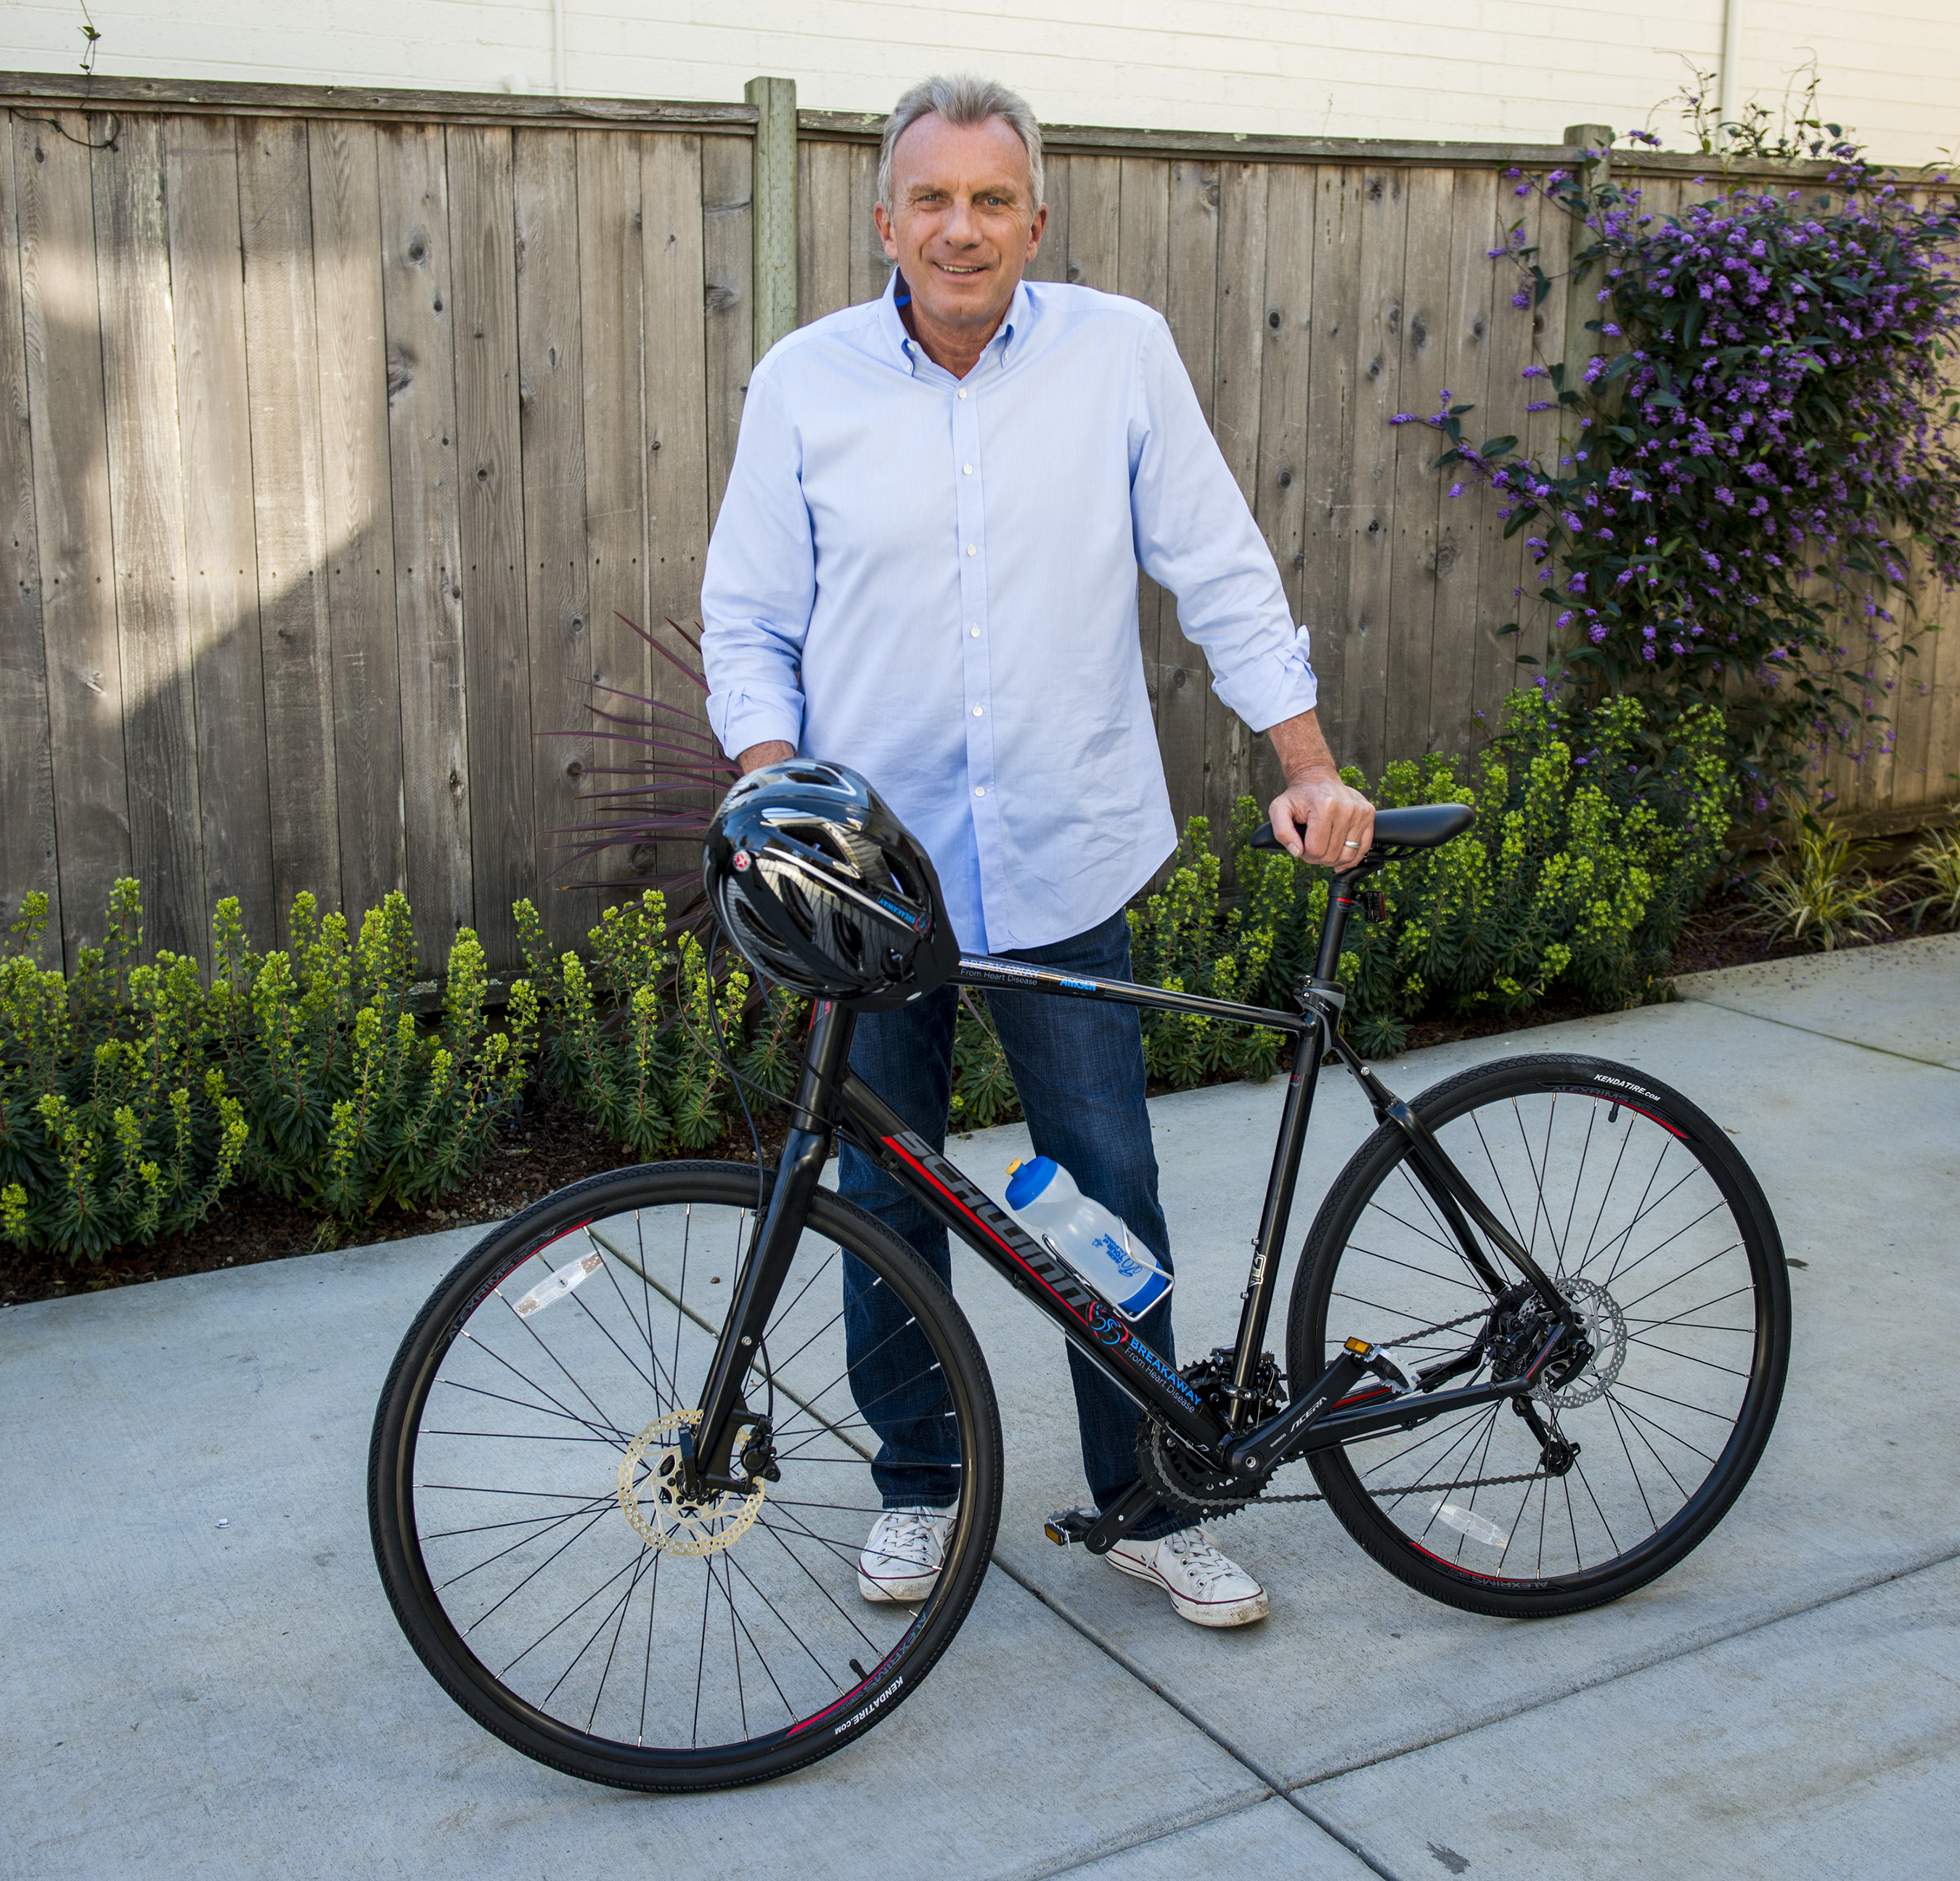 Joe Cycles for Heart Health